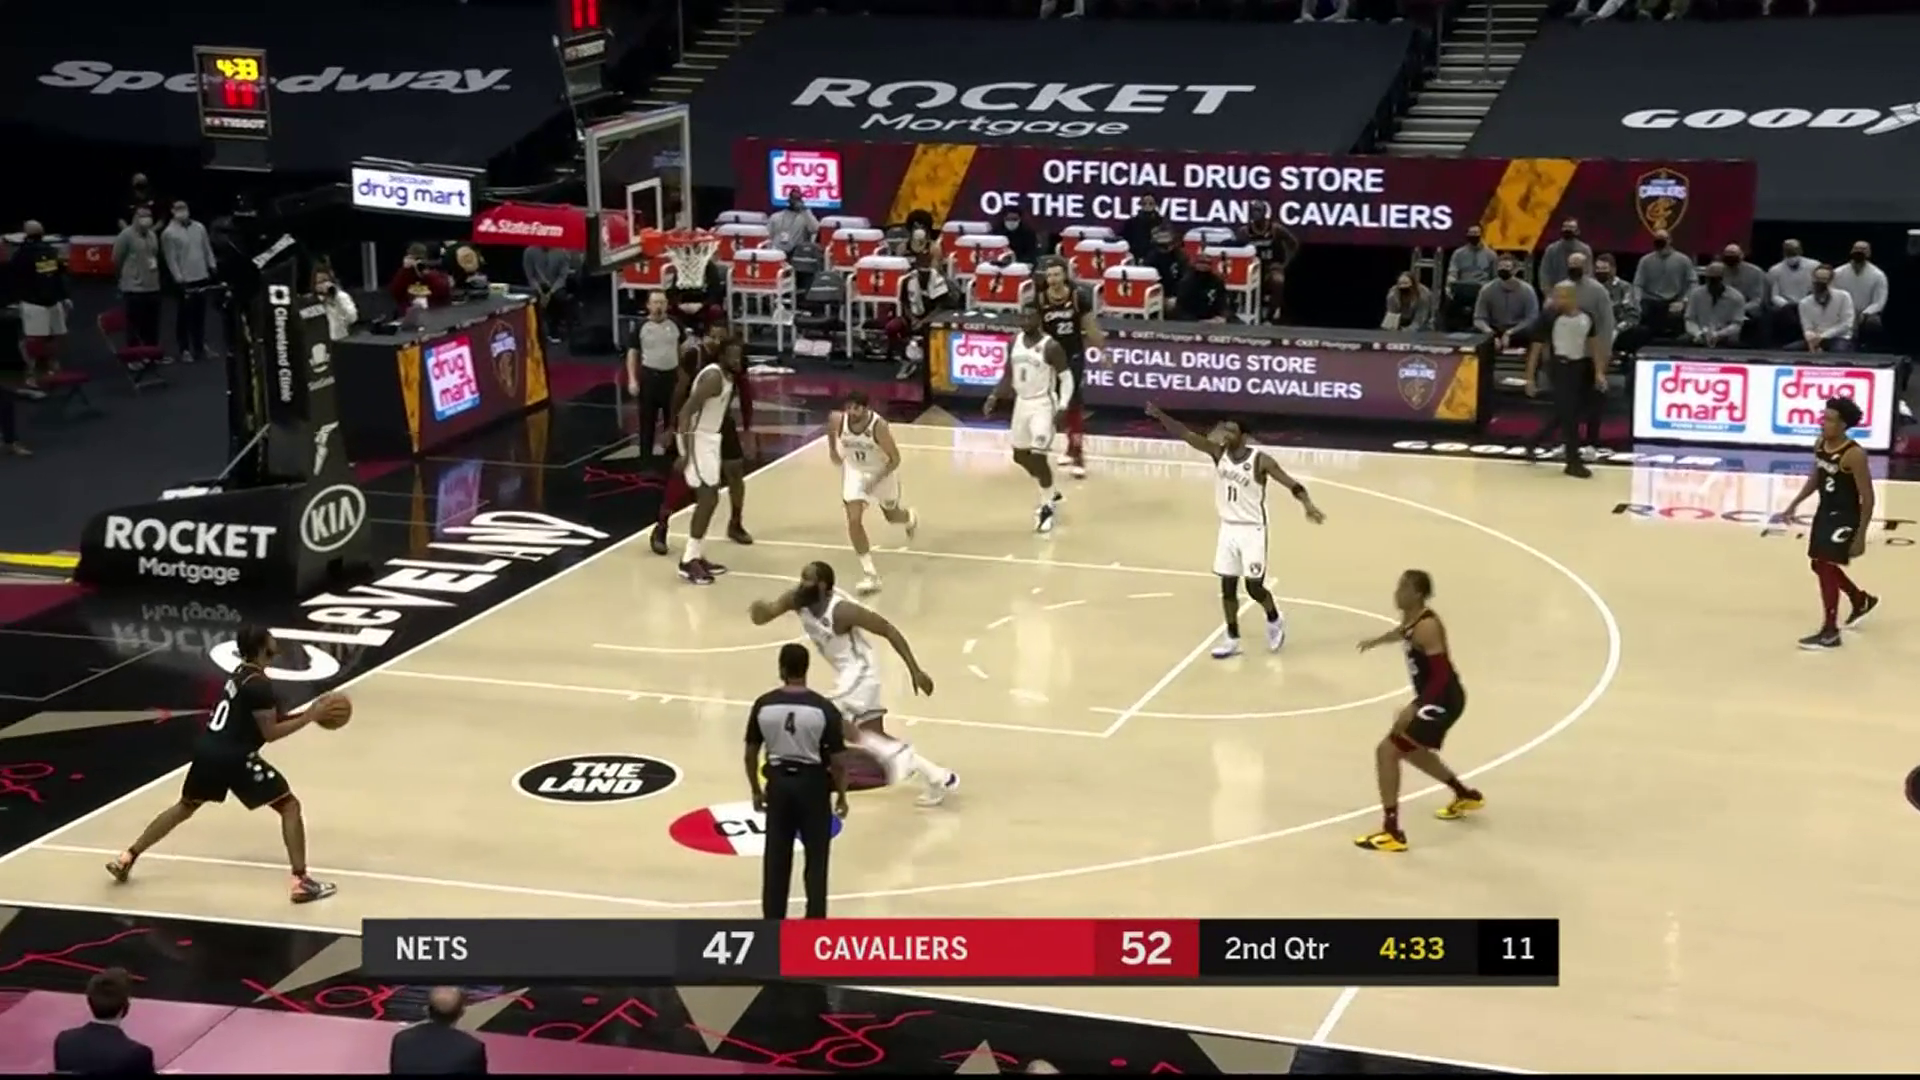 Cavs Show Off Ball Movement to Extend Lead against the Nets